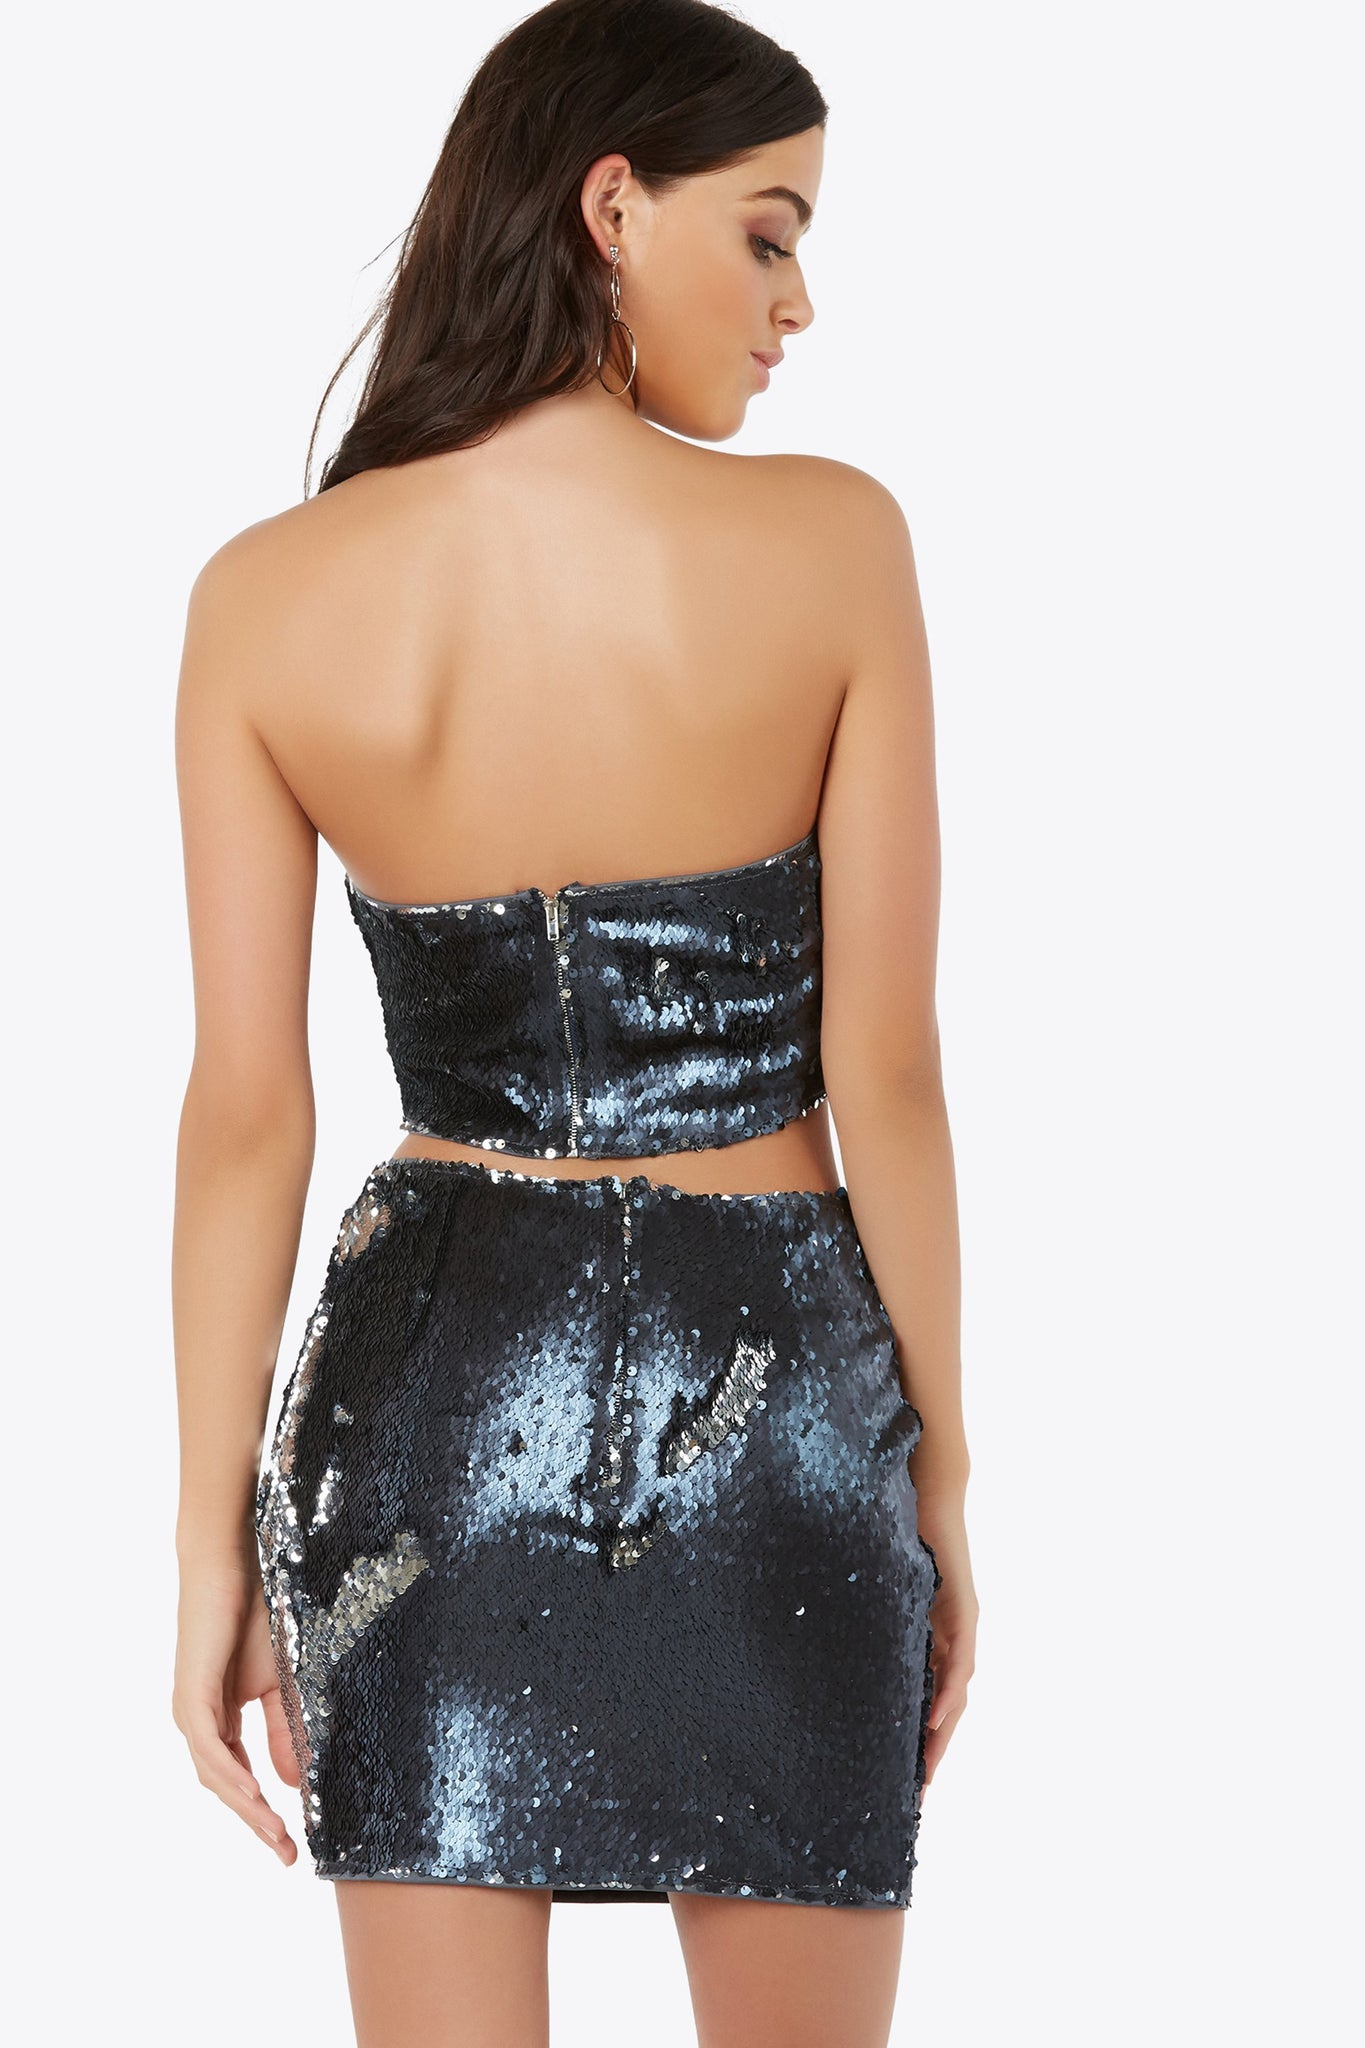 Strapless tube crop top with stunning sequin exterior all around. Fully lined with padding at bust and back zip closure.